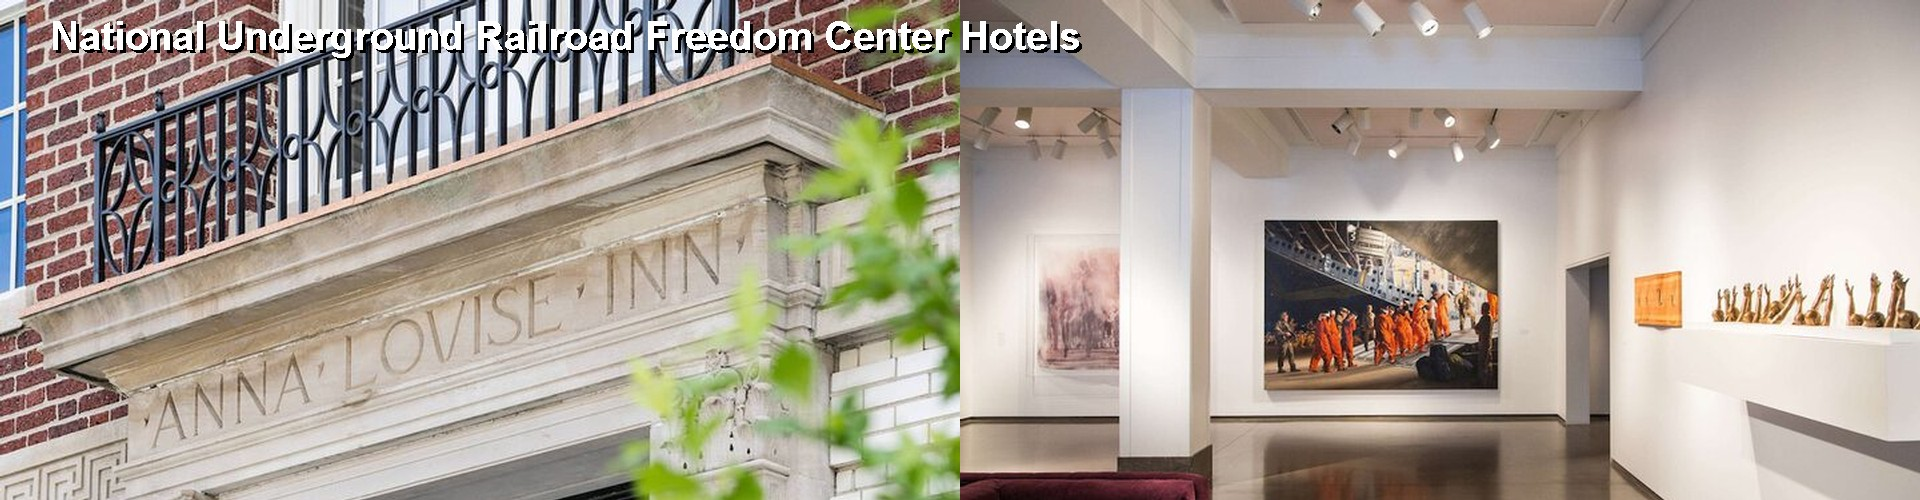 5 Best Hotels near National Underground Railroad Freedom Center